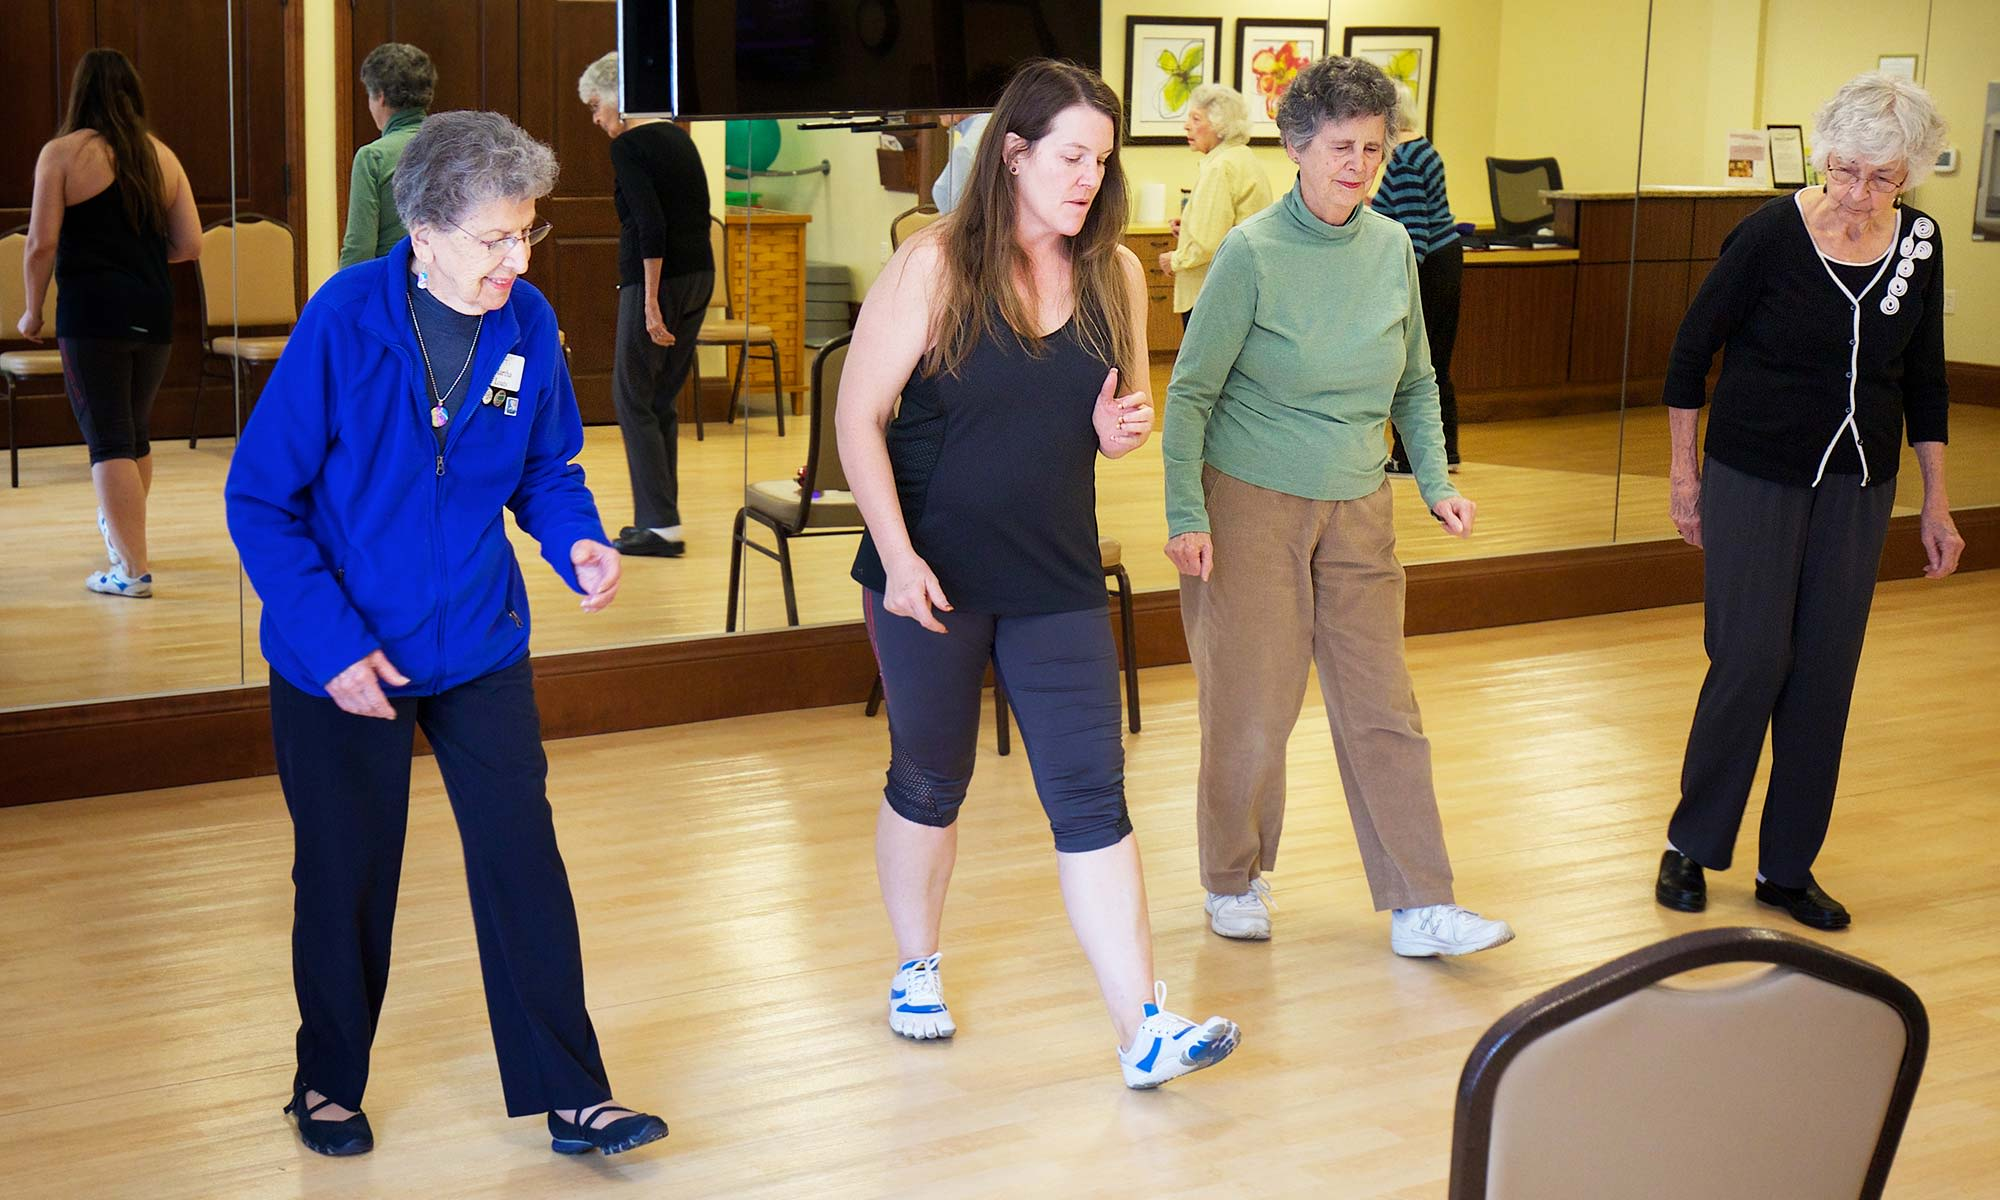 Residents of Clermont Park taking a dancing class